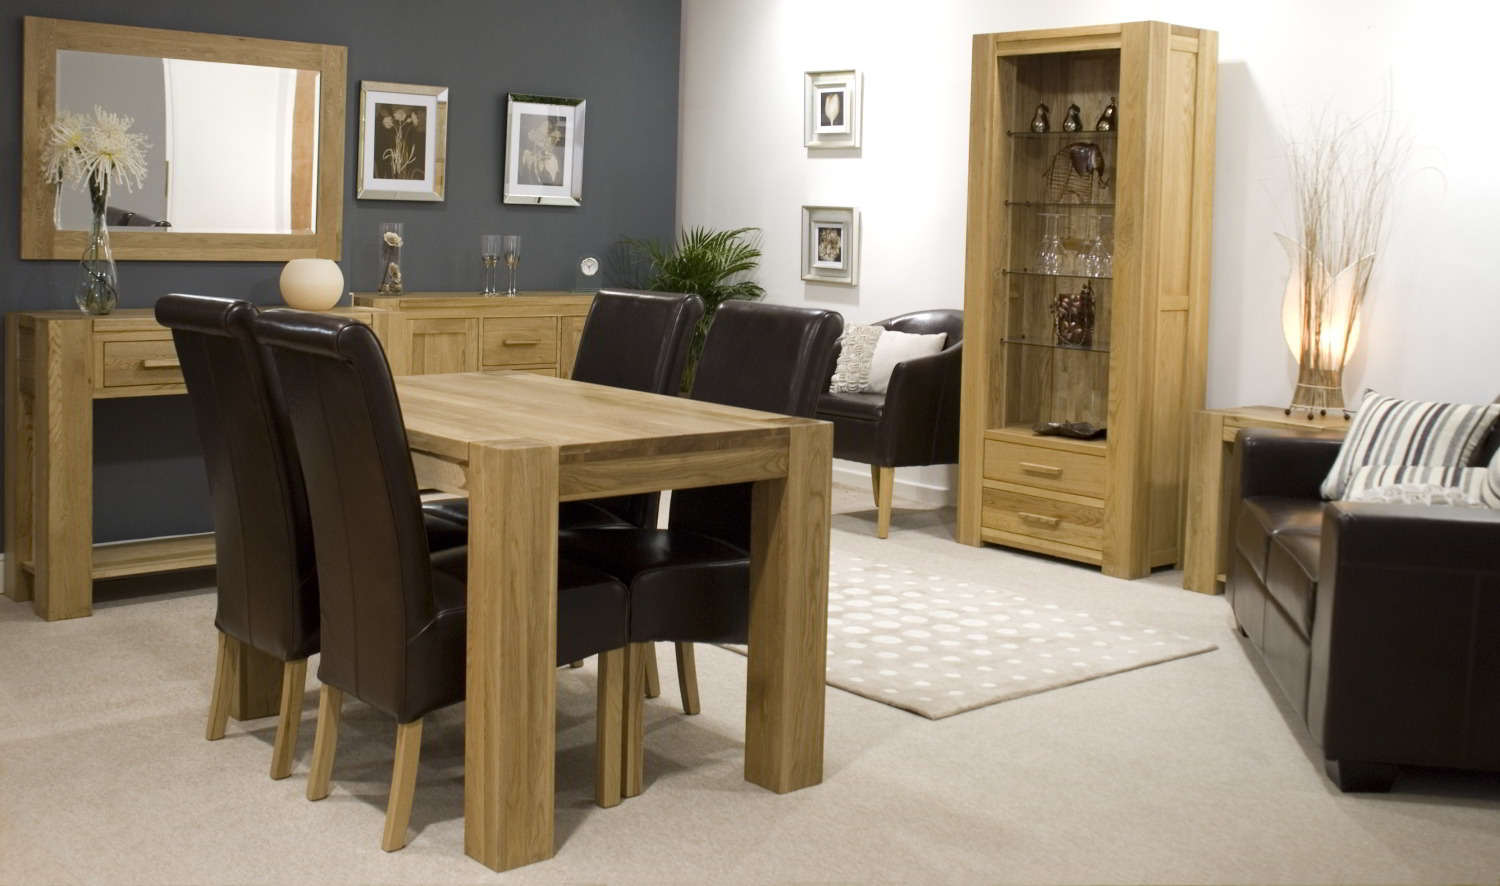 Pemberton solid oak furniture small living room office for Living room designs with dining table